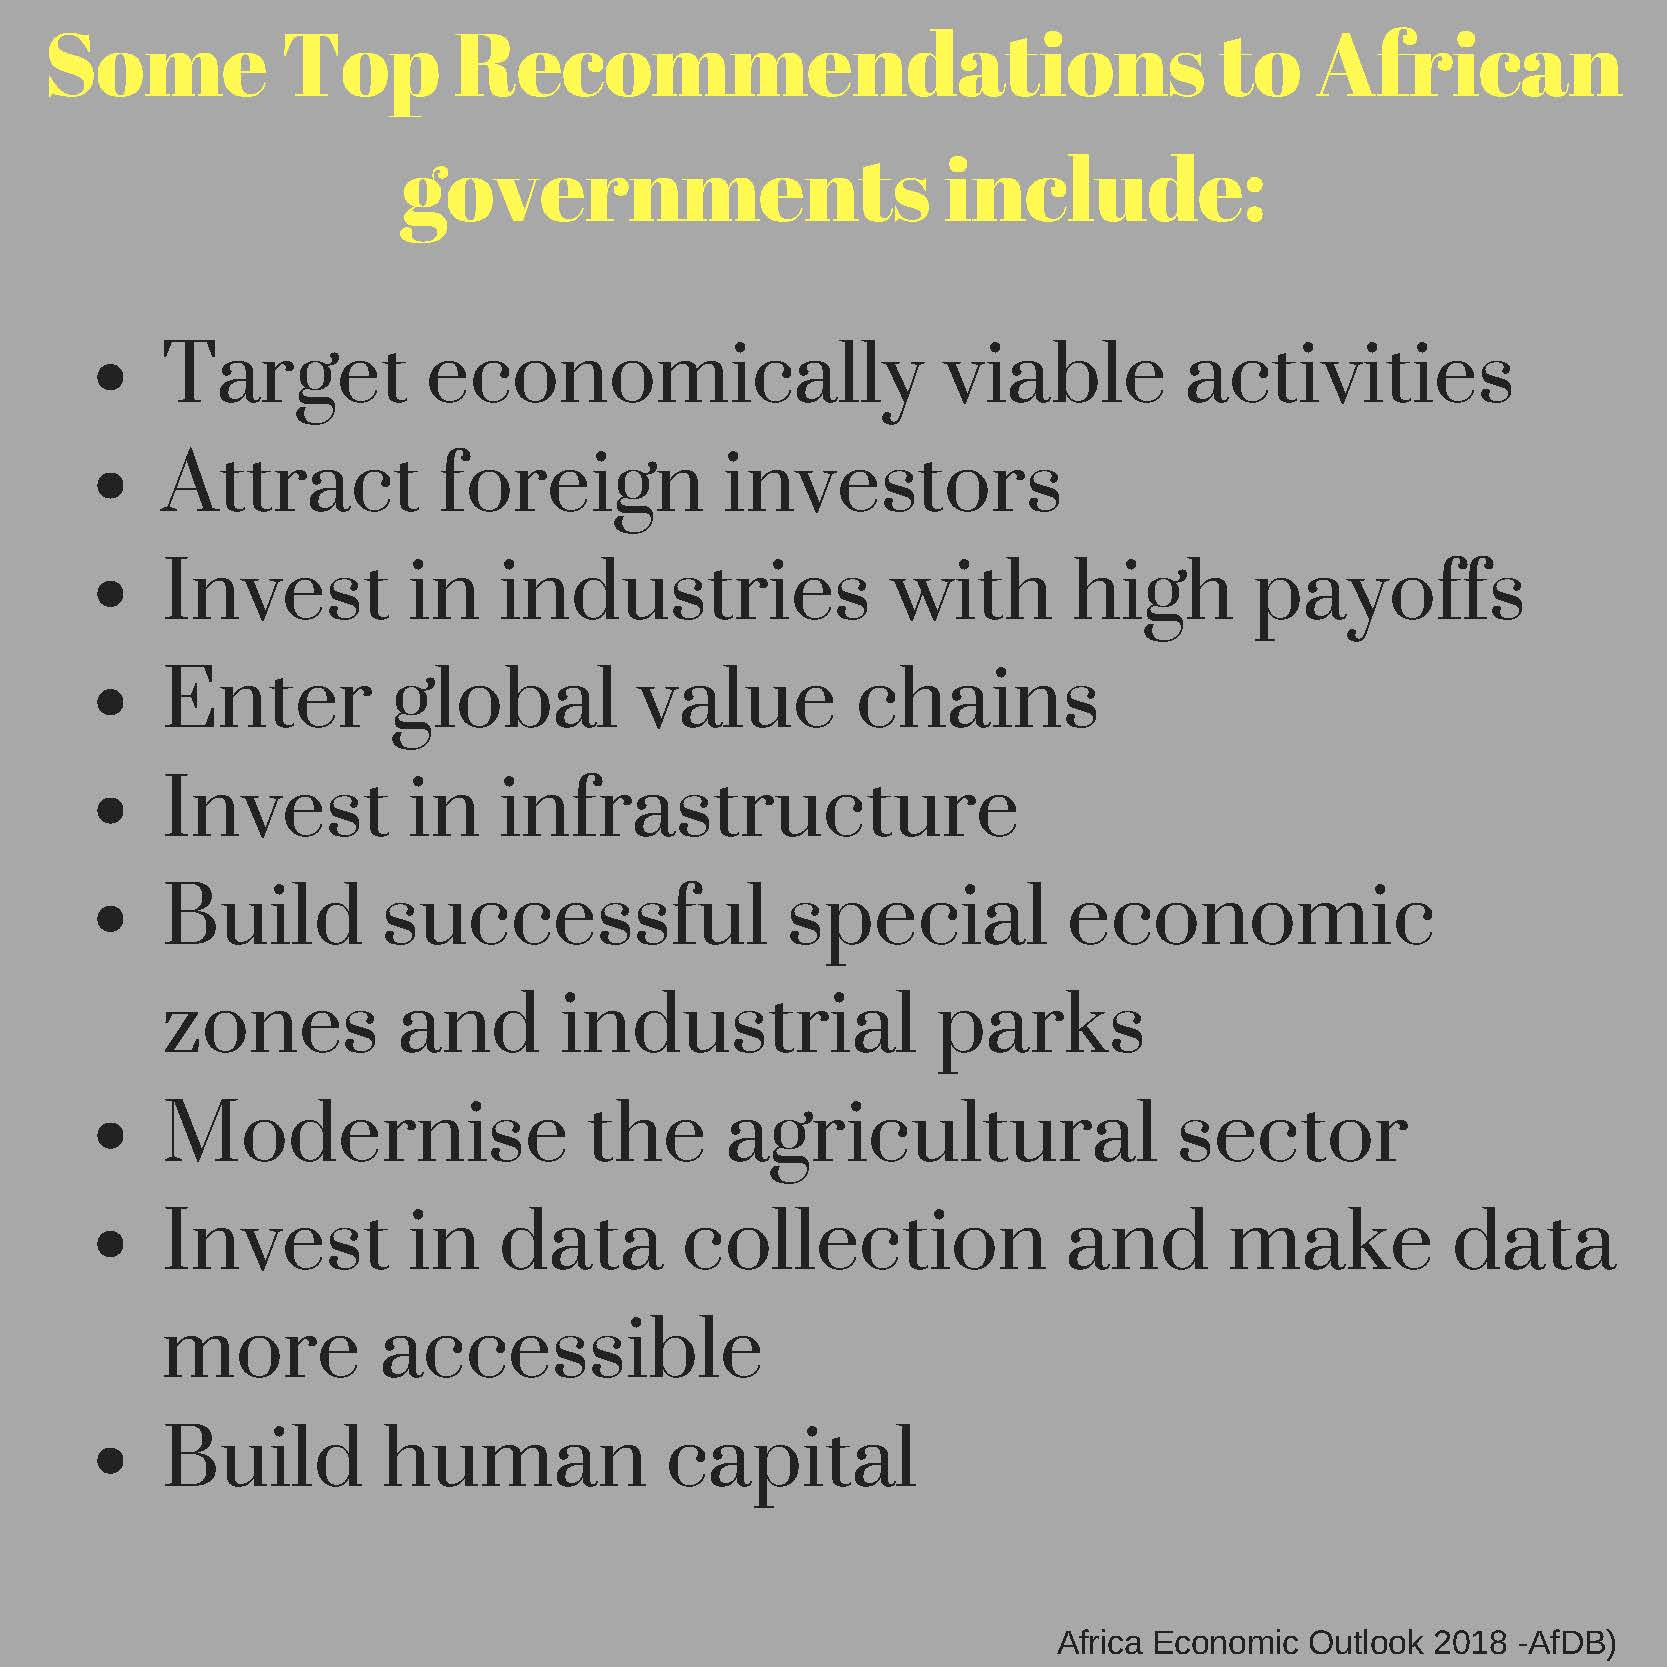 The state of African economies: According to AfDB's African Economic